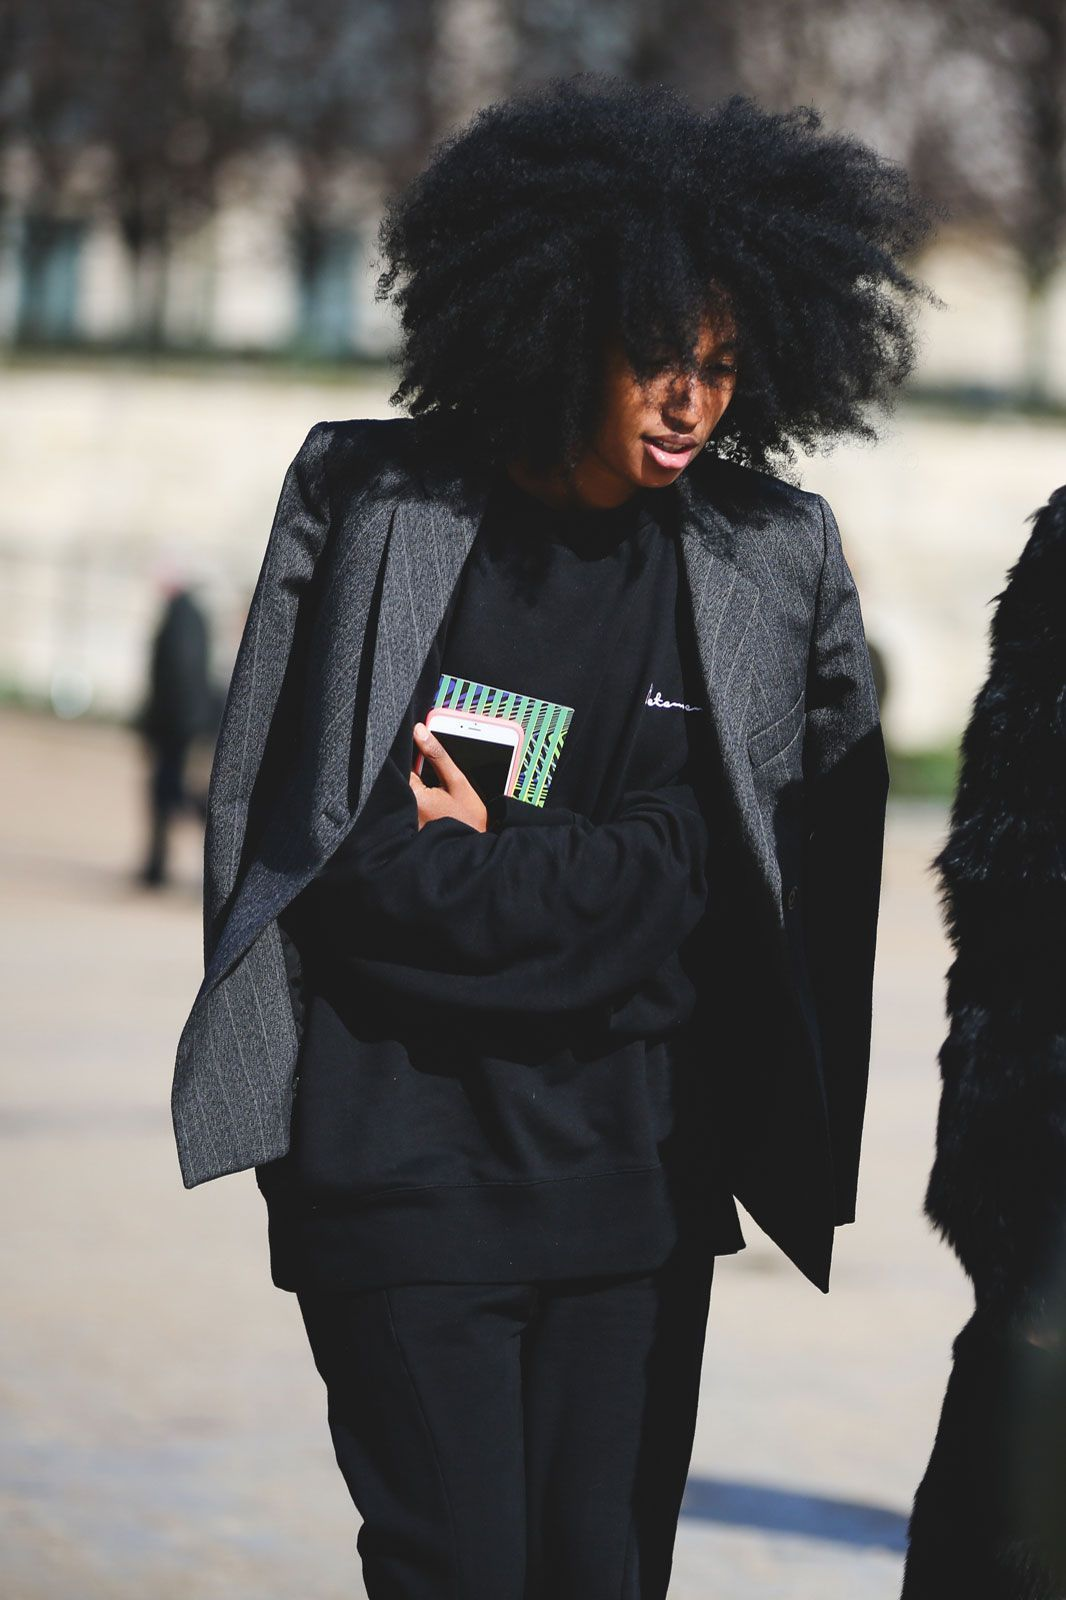 How French Girls Do Street Style For Fashion Week  #refinery29  http://www.refinery29.com/2016/03/105661/paris-fashion-week-fall-winter-2016-street-style-pictures#slide-27  And numero quatre....